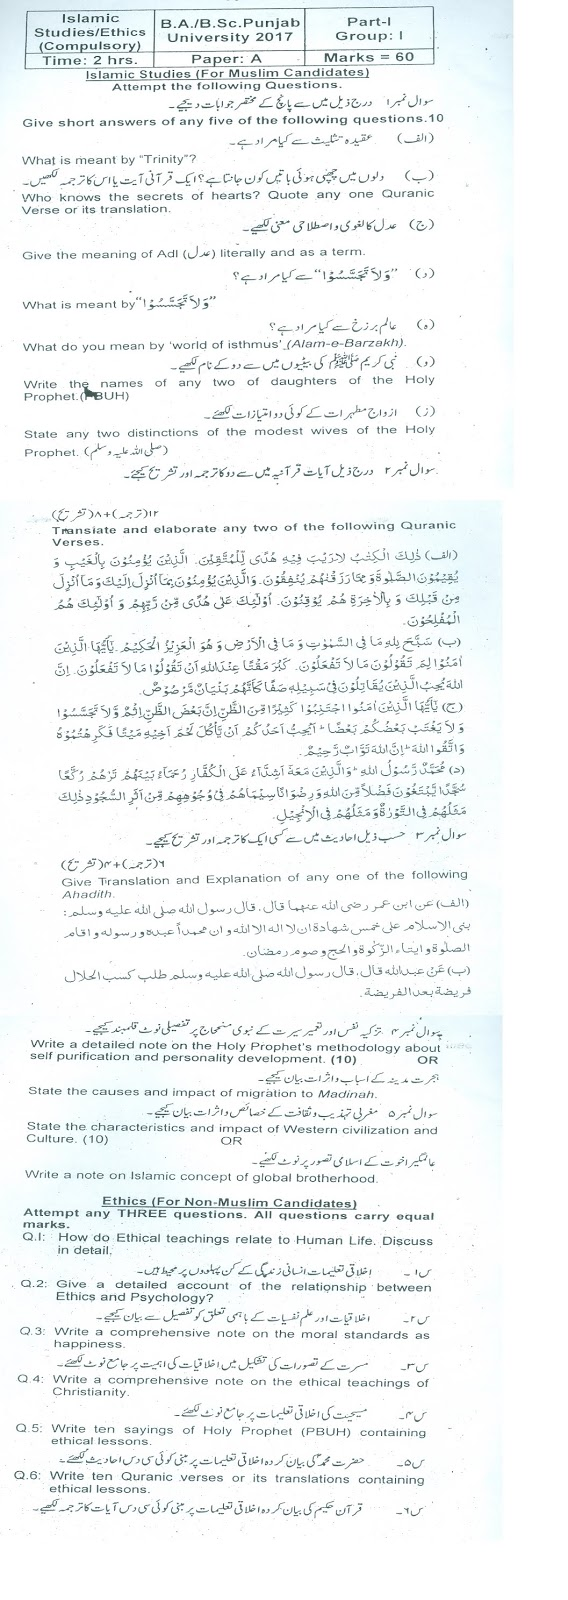 BA/Bsc Islamiyat elective and ethics elective 2017 past papers punjab university lahore